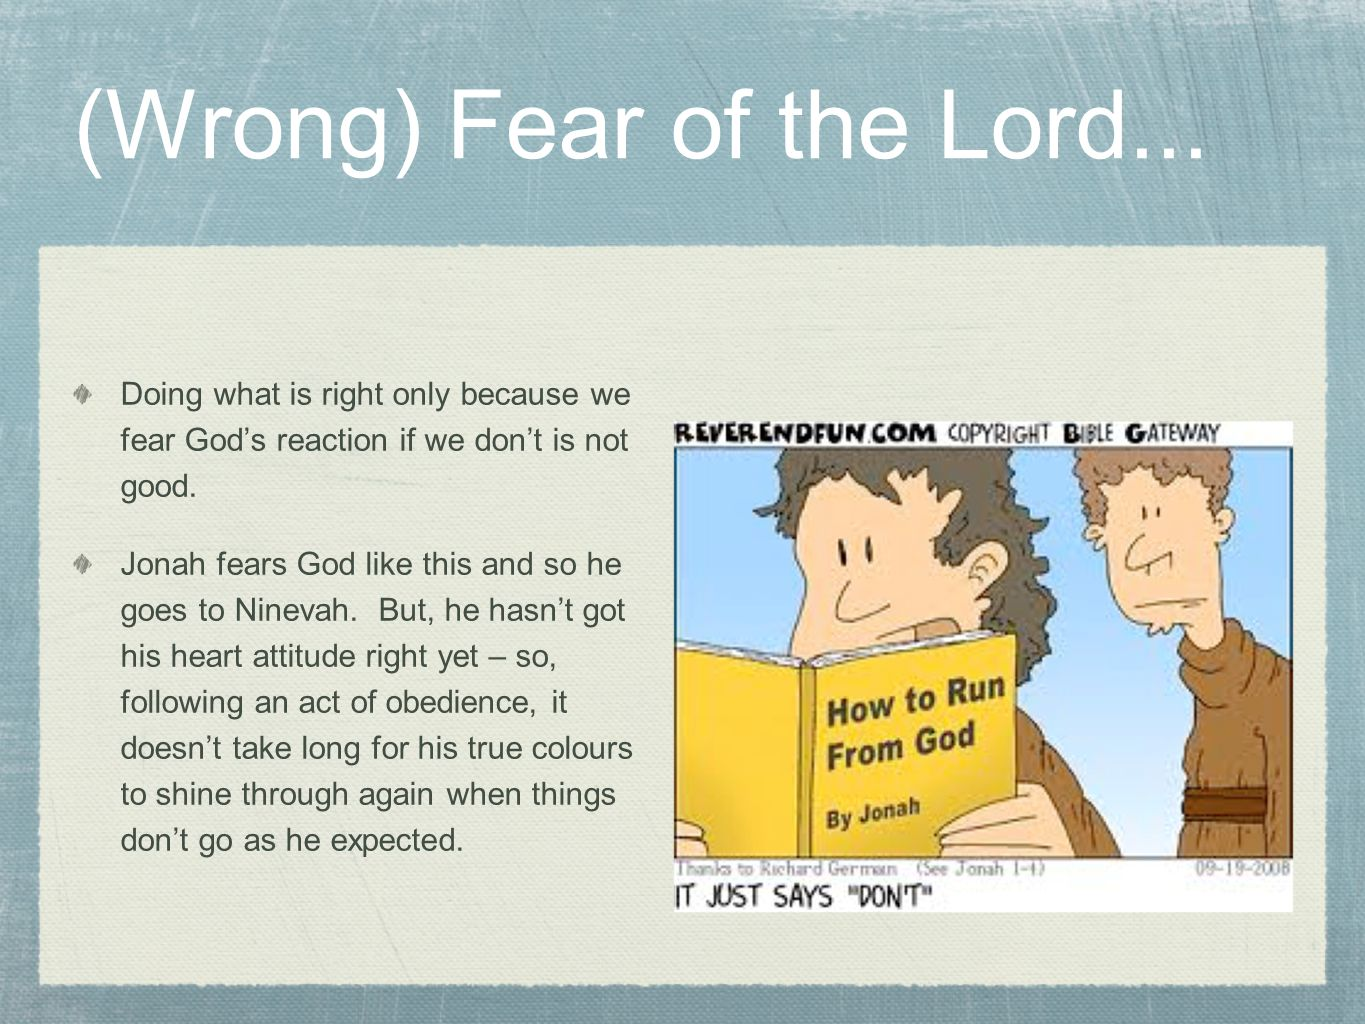 (Wrong) Fear of the Lord...